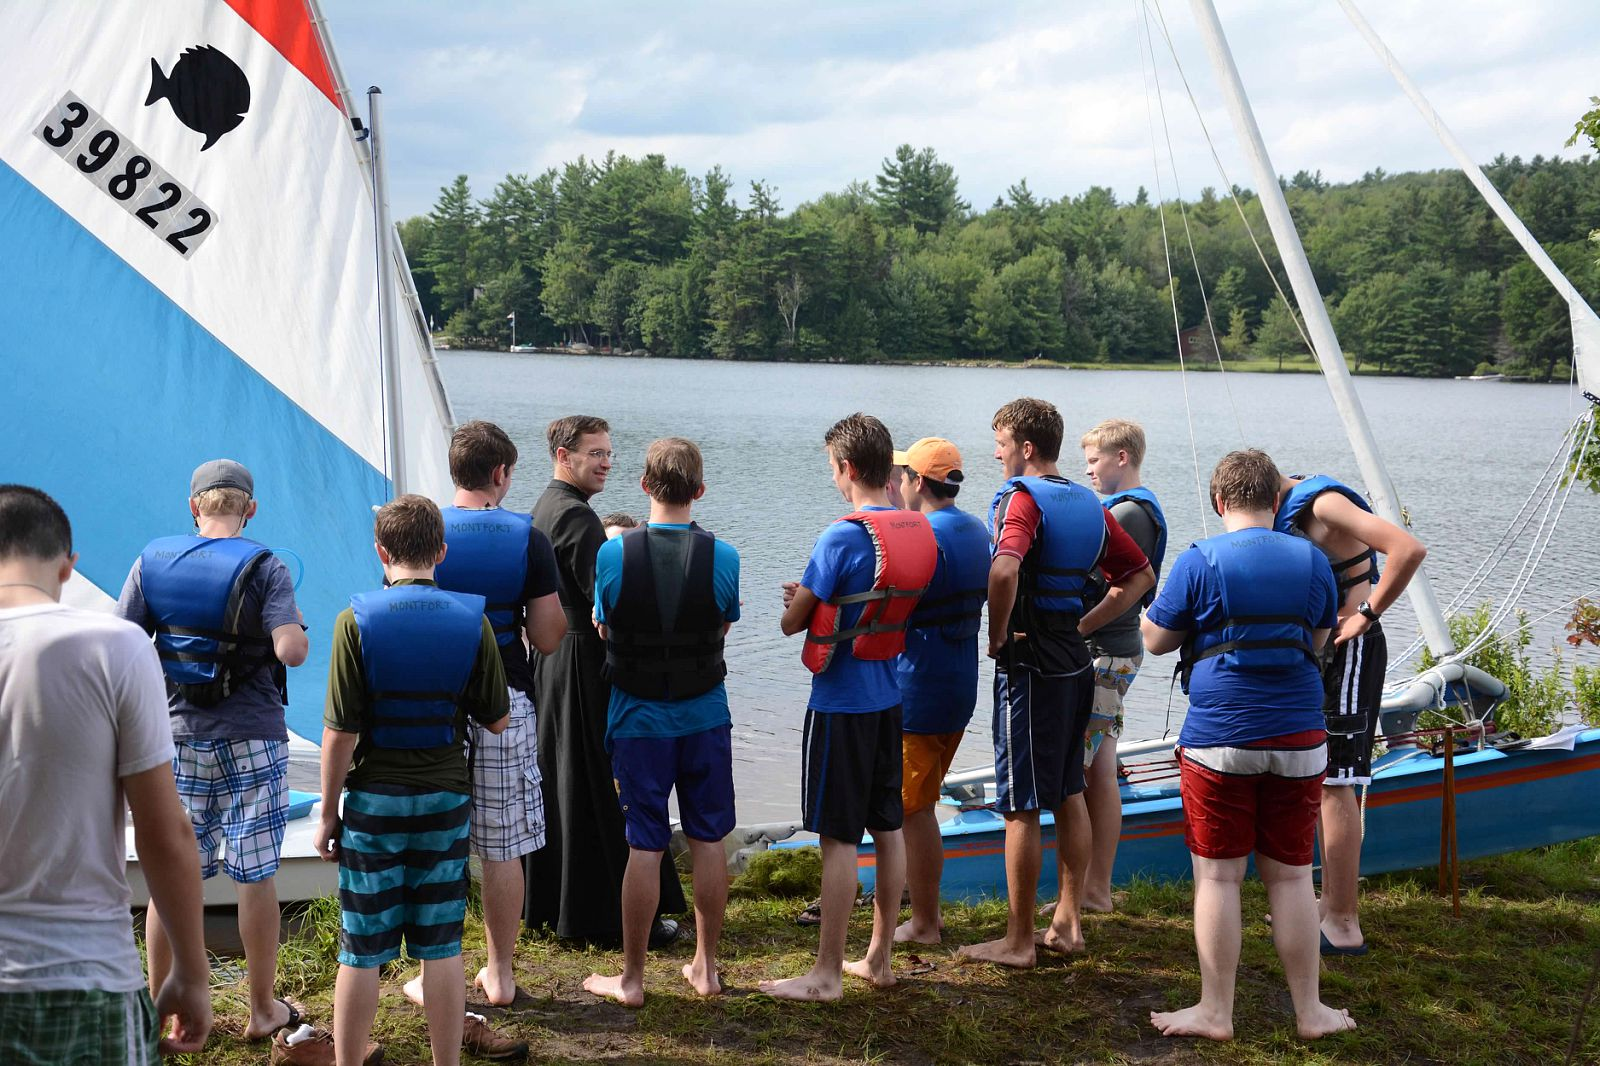 A Brother instructs Montfort campers in sailing